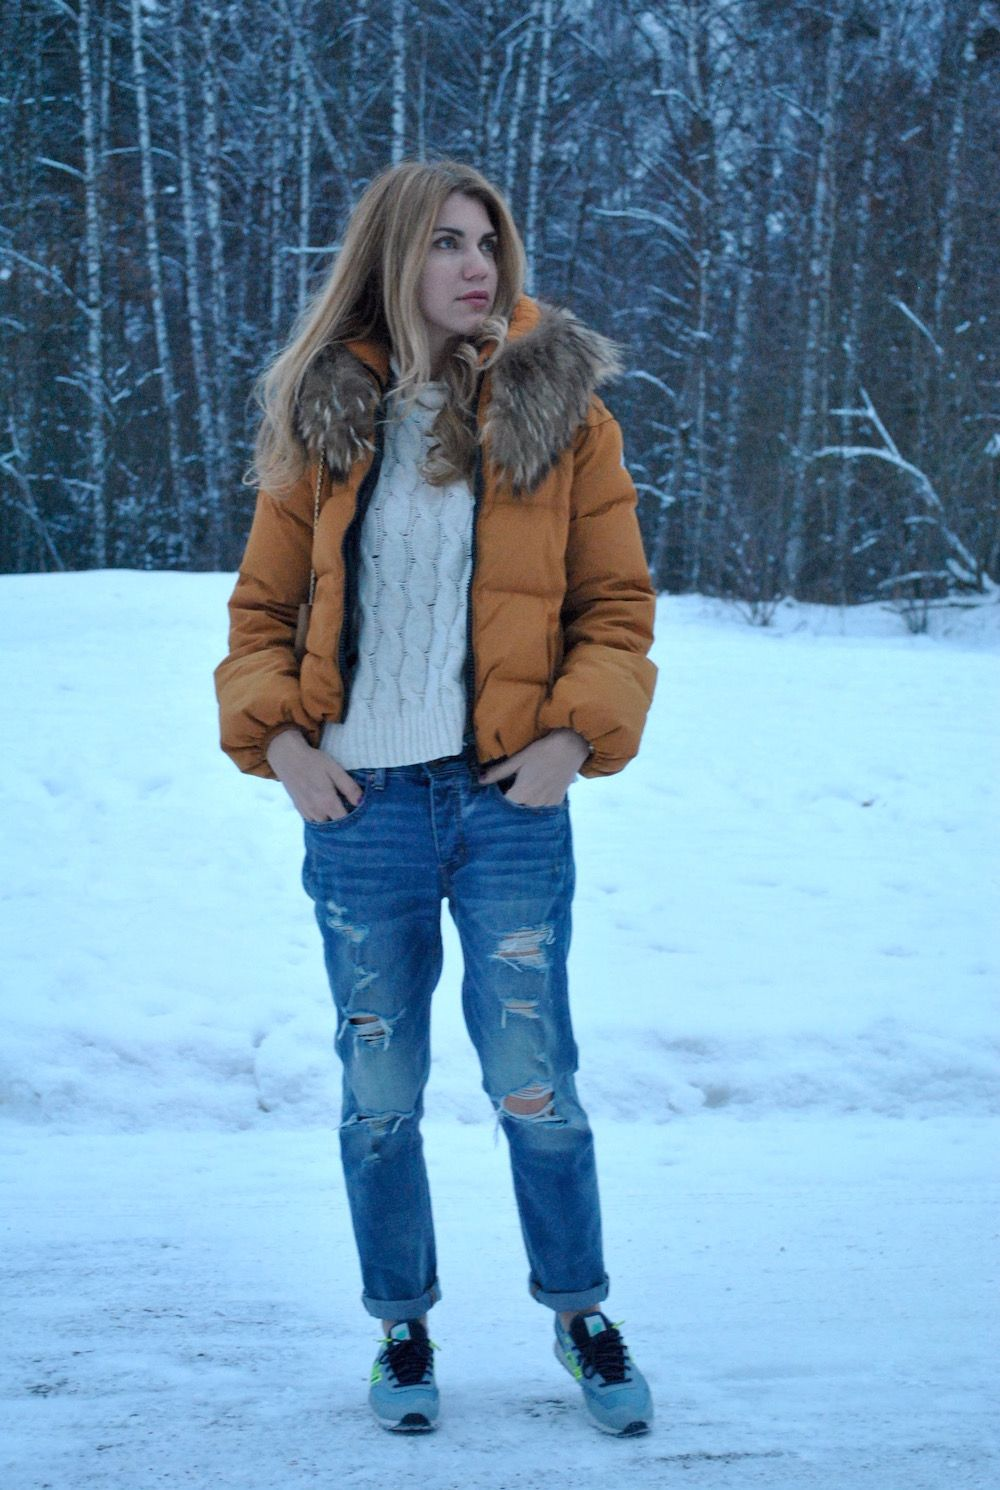 Want to know how to dress for winter and stay fashionable? Can I wear my favourite piece of clothing even though it is cold? Then, this article is for you.